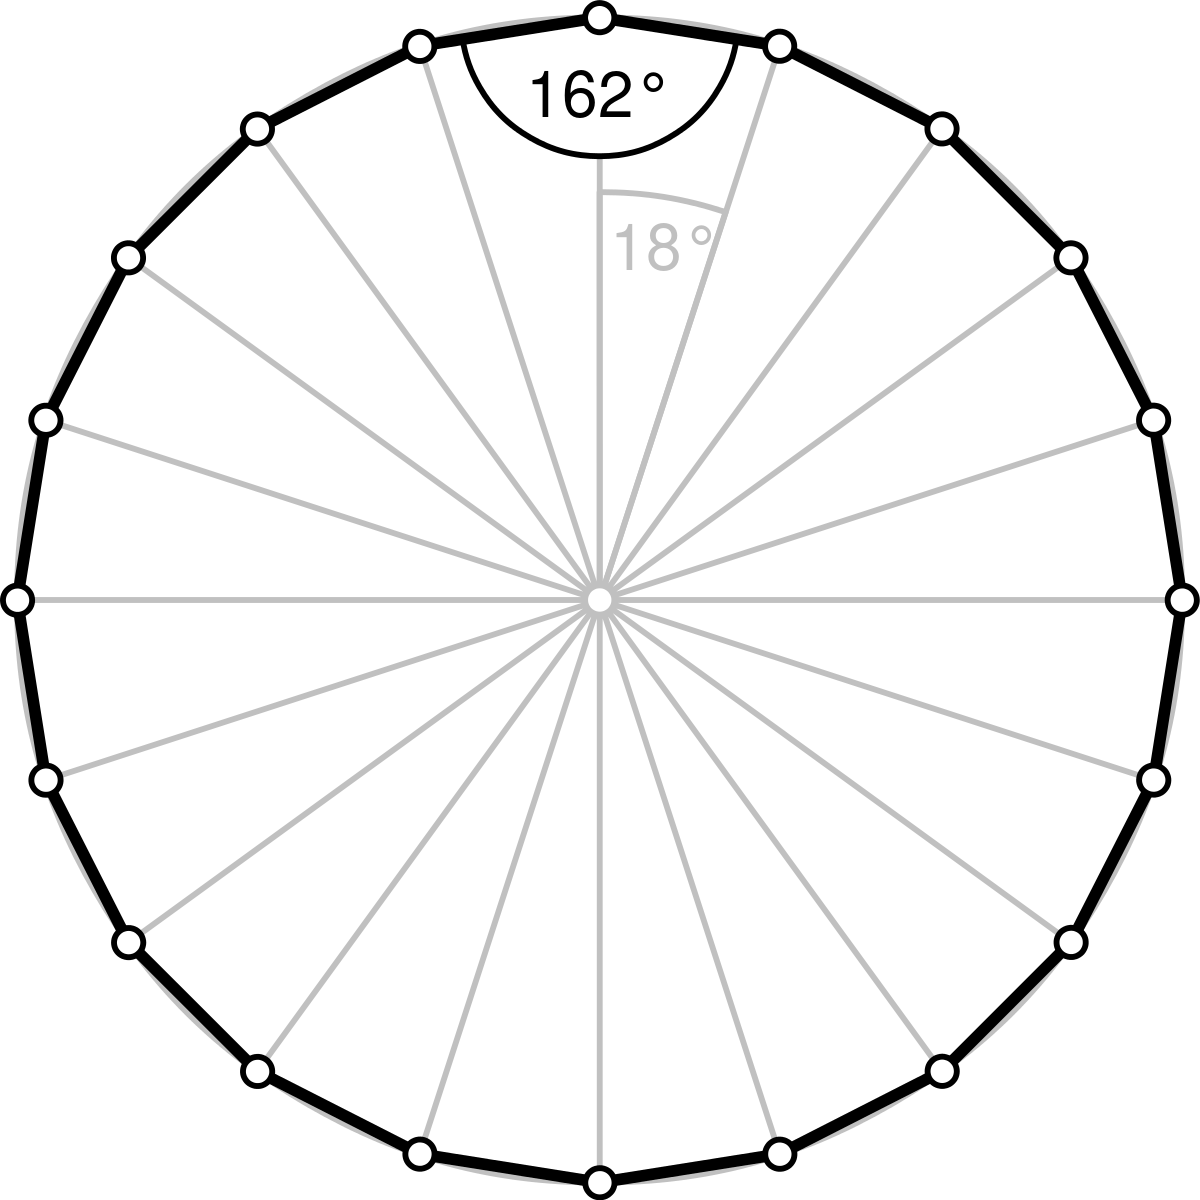 Icosagon wikipedia . Fractions clipart drawing